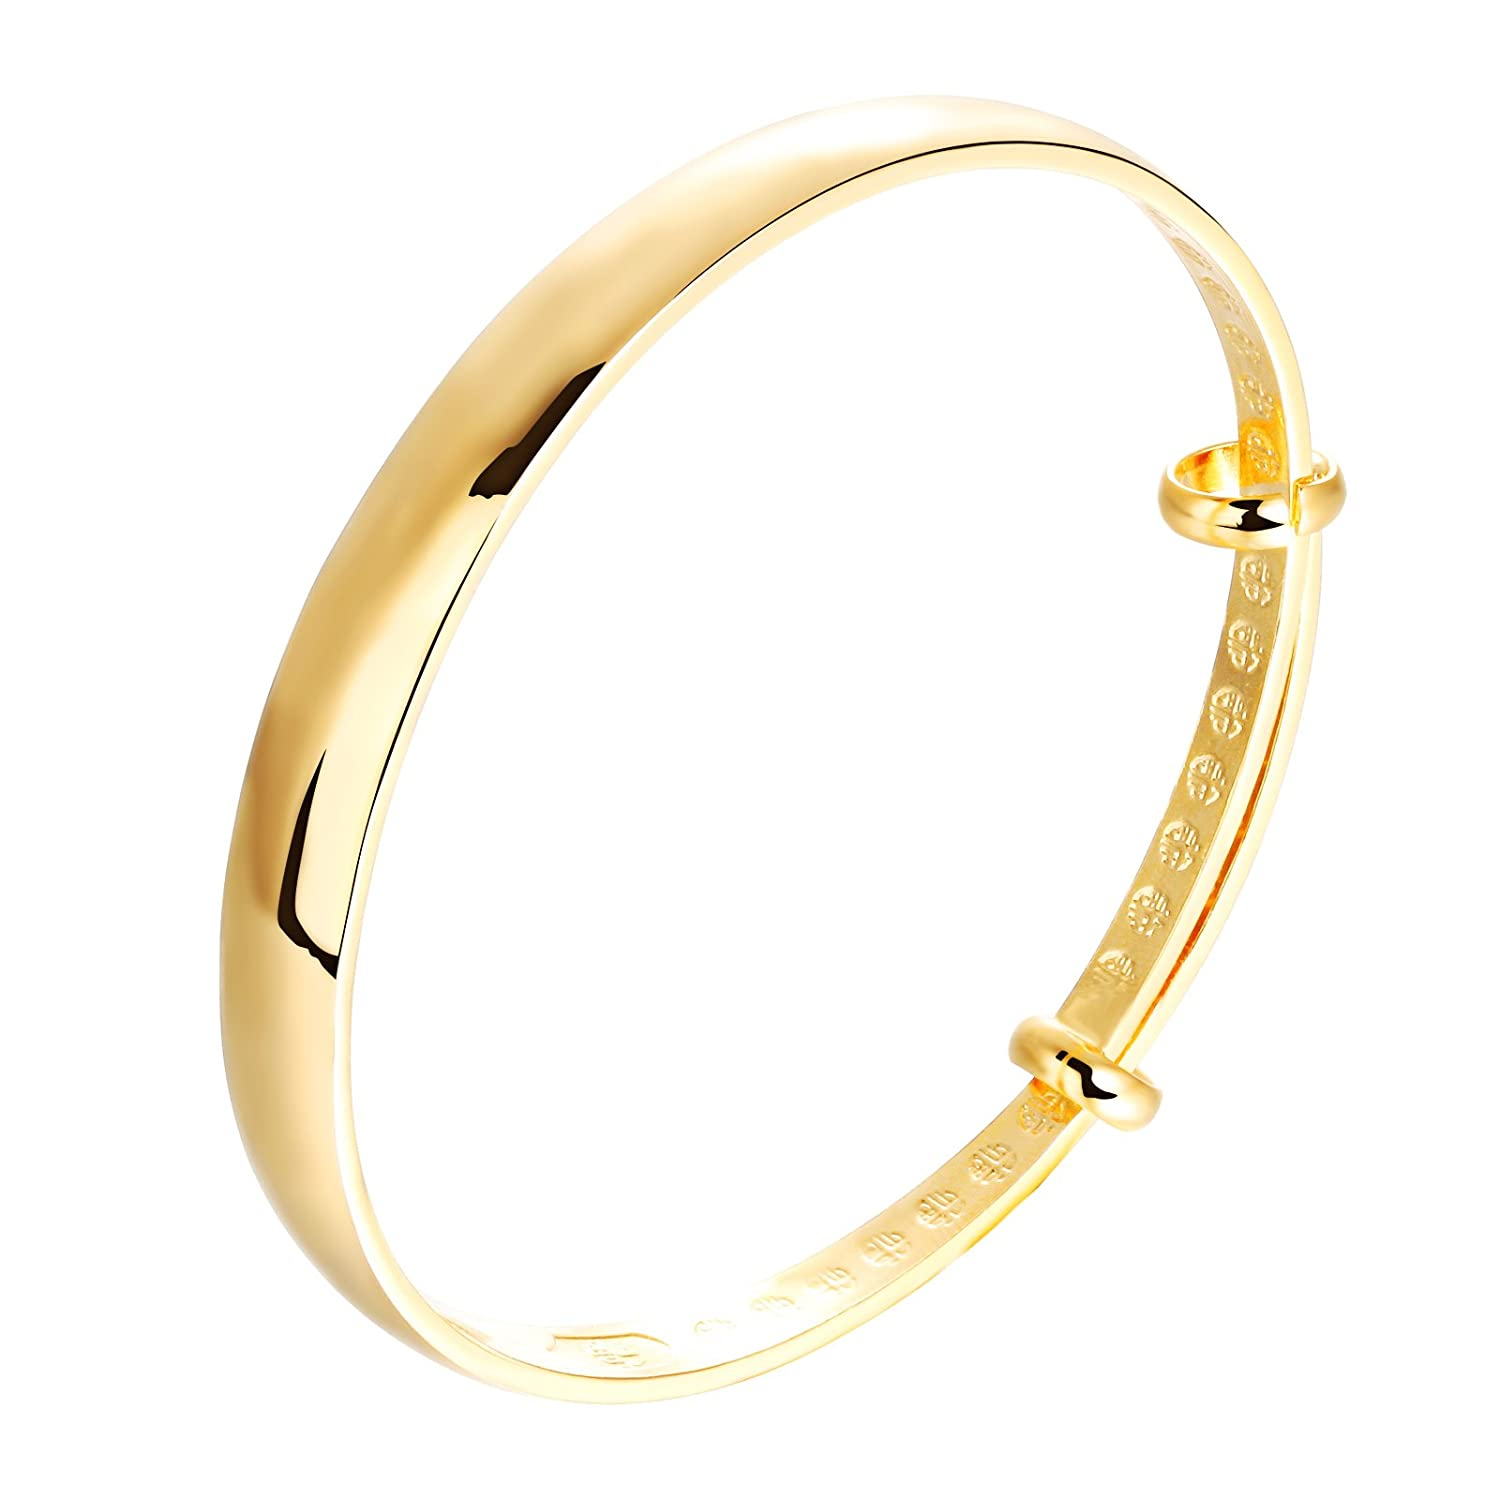 Scorpios Bystar Solid Yellow Gold Plated Smooth Torque Bangle Bracelet Adjustable bxTBR